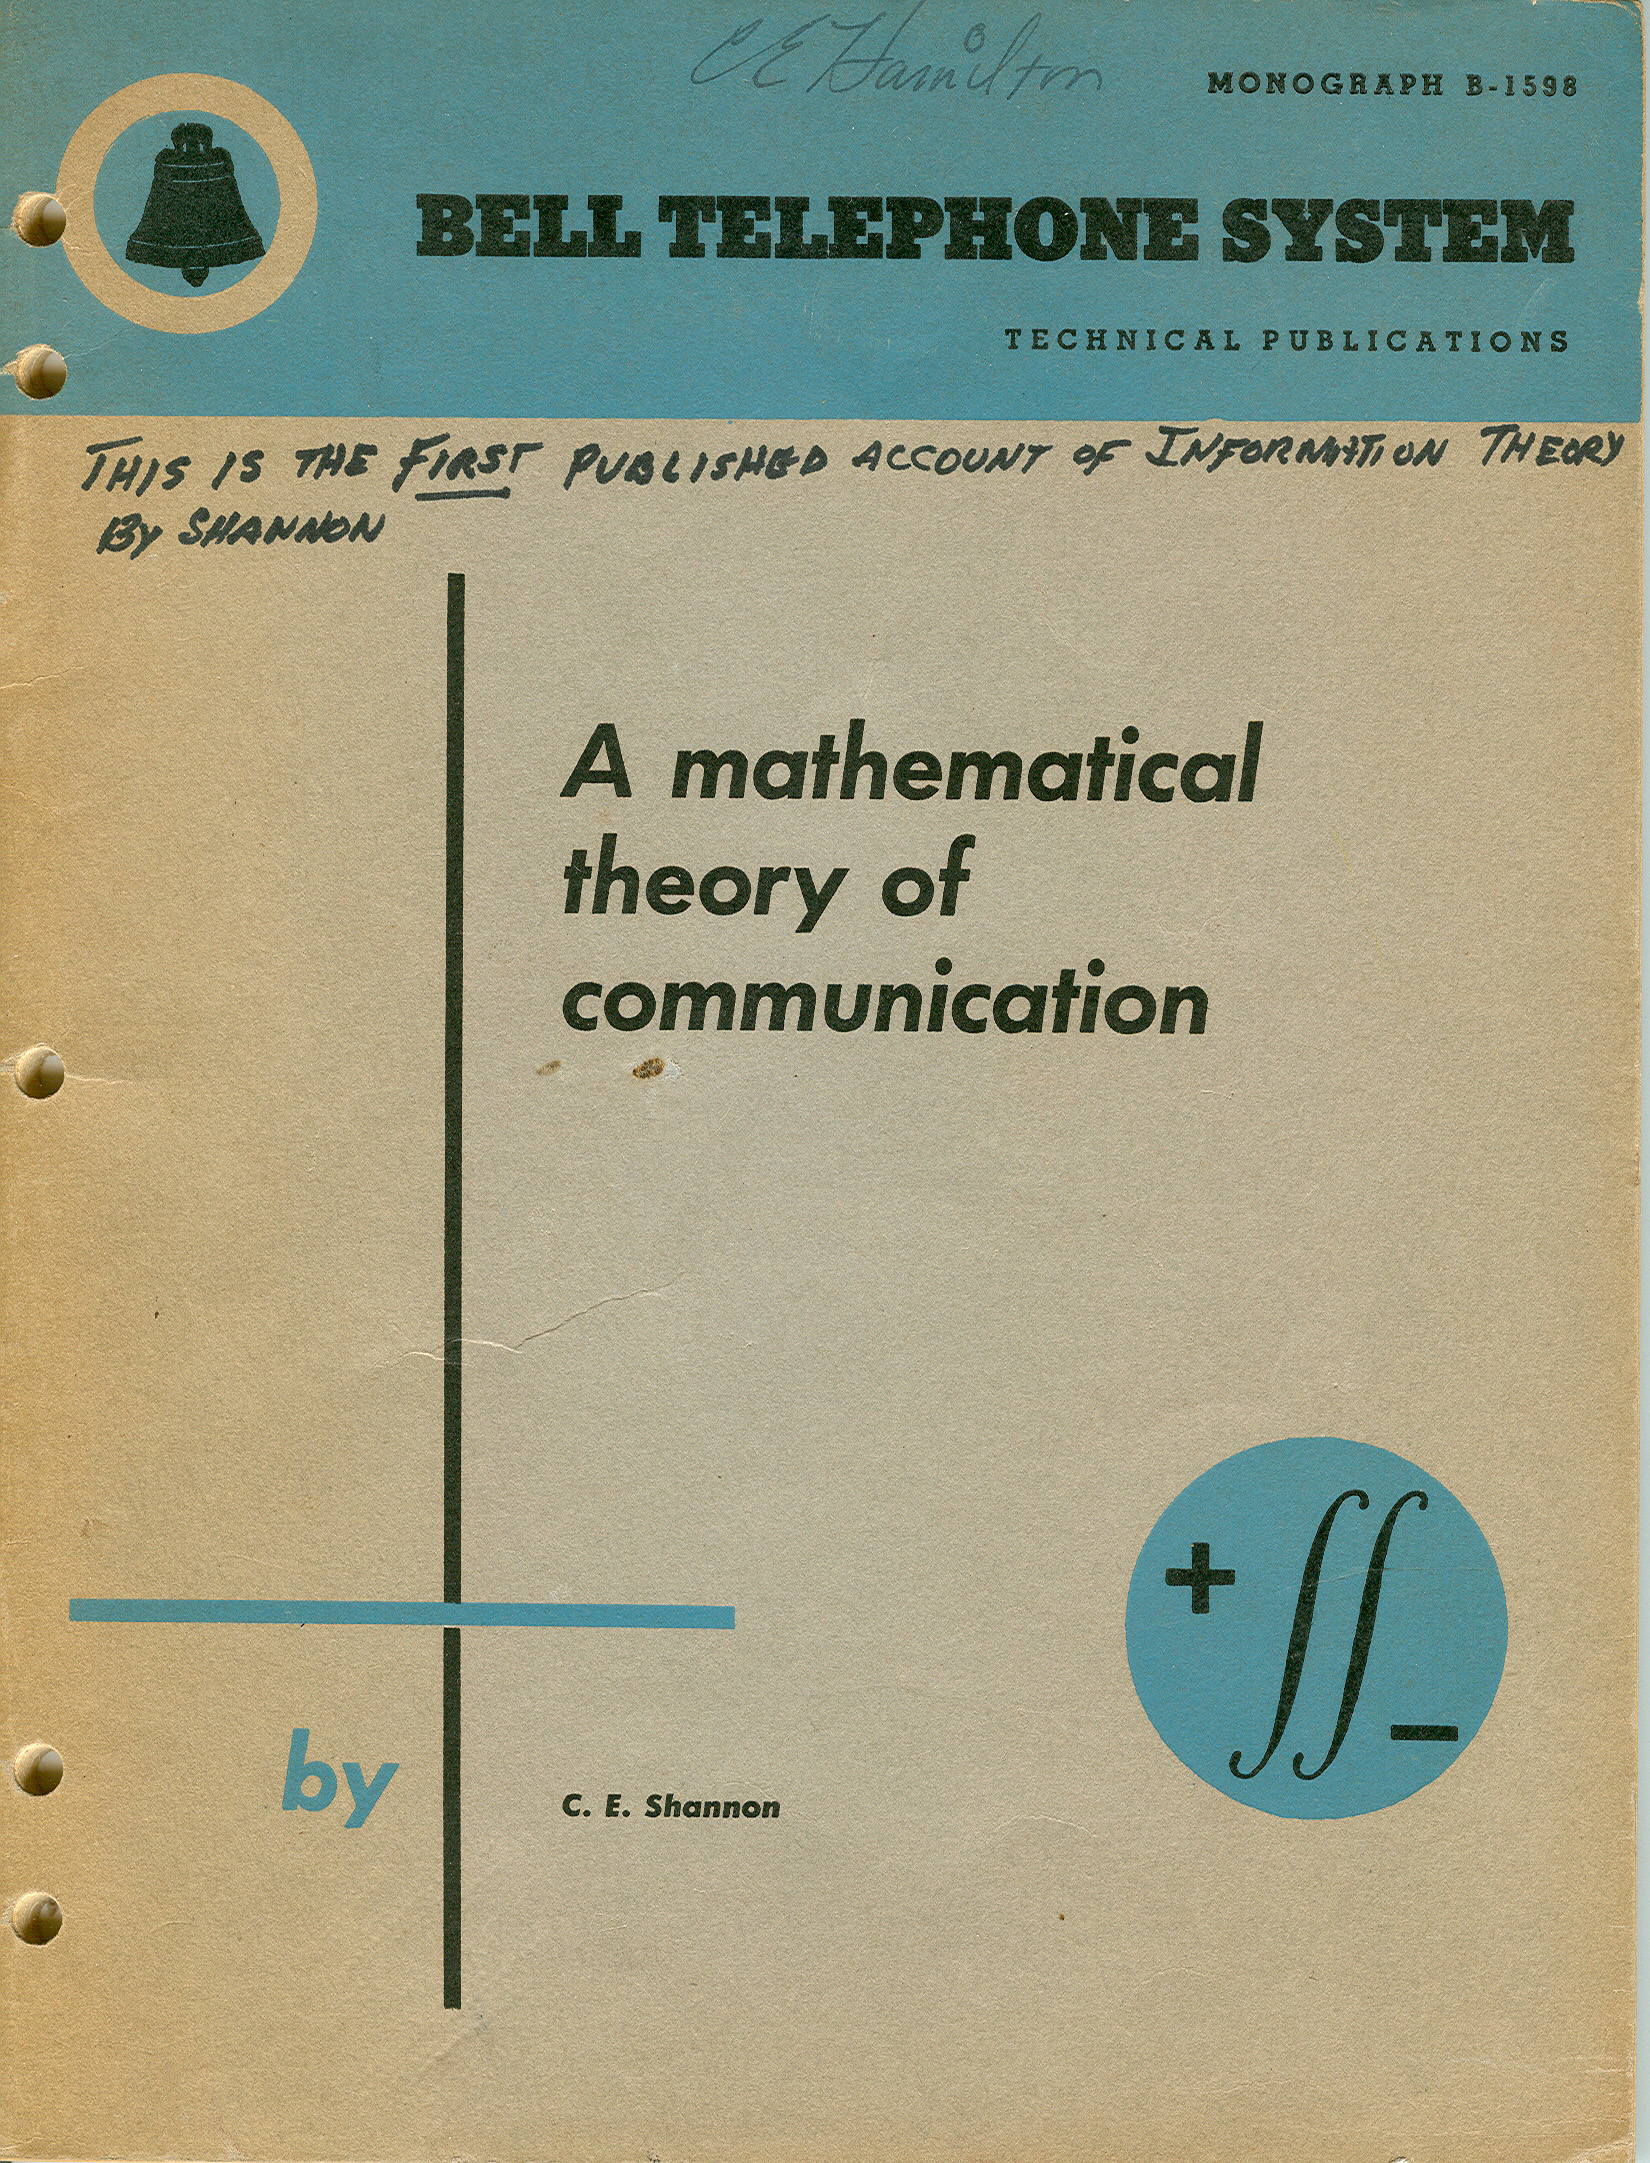 image of Cover of Monograph B-1598